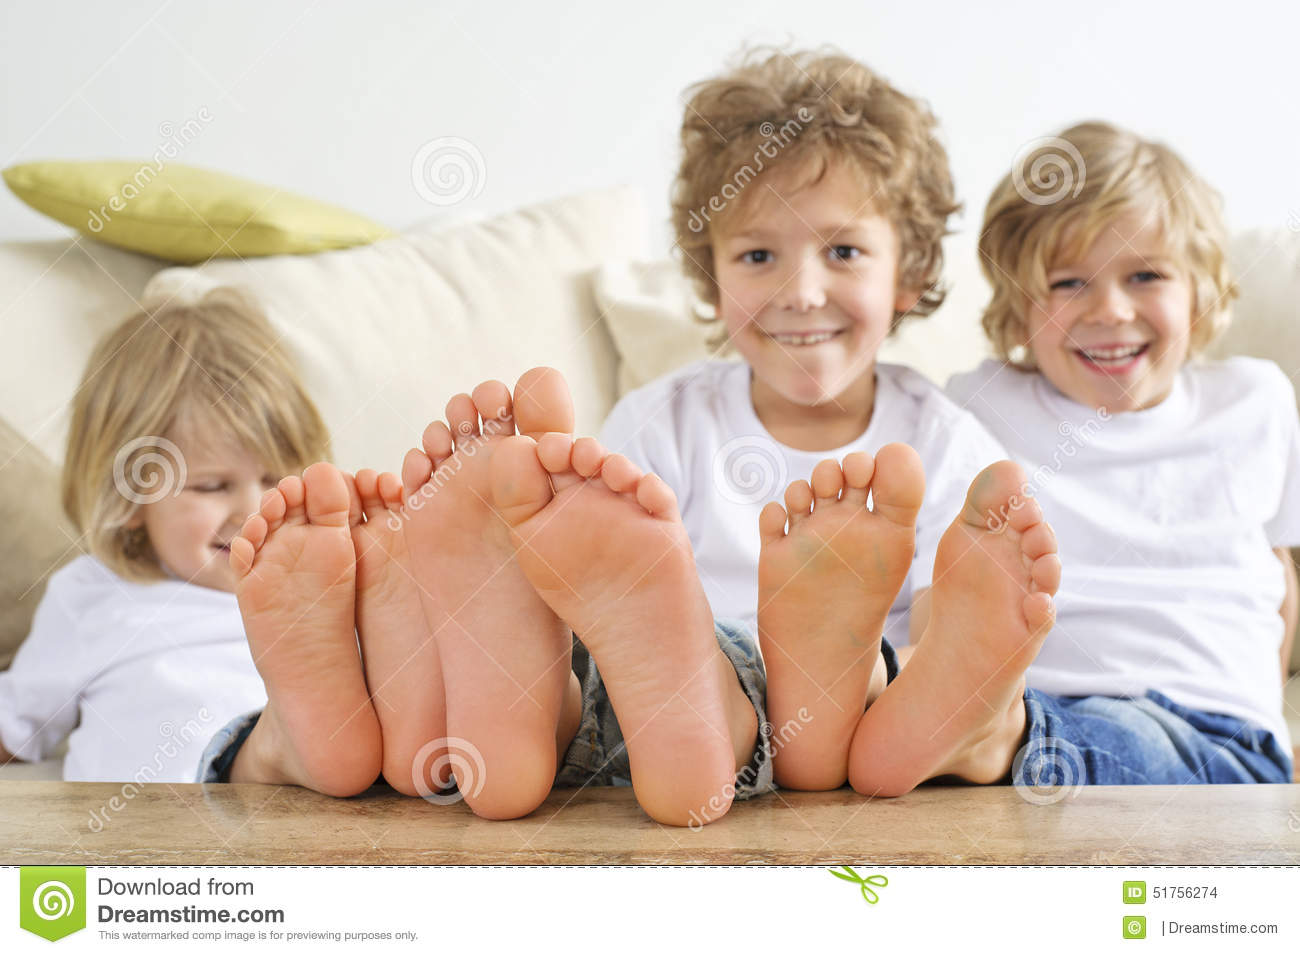 Three Boys With Bare Feet On Table